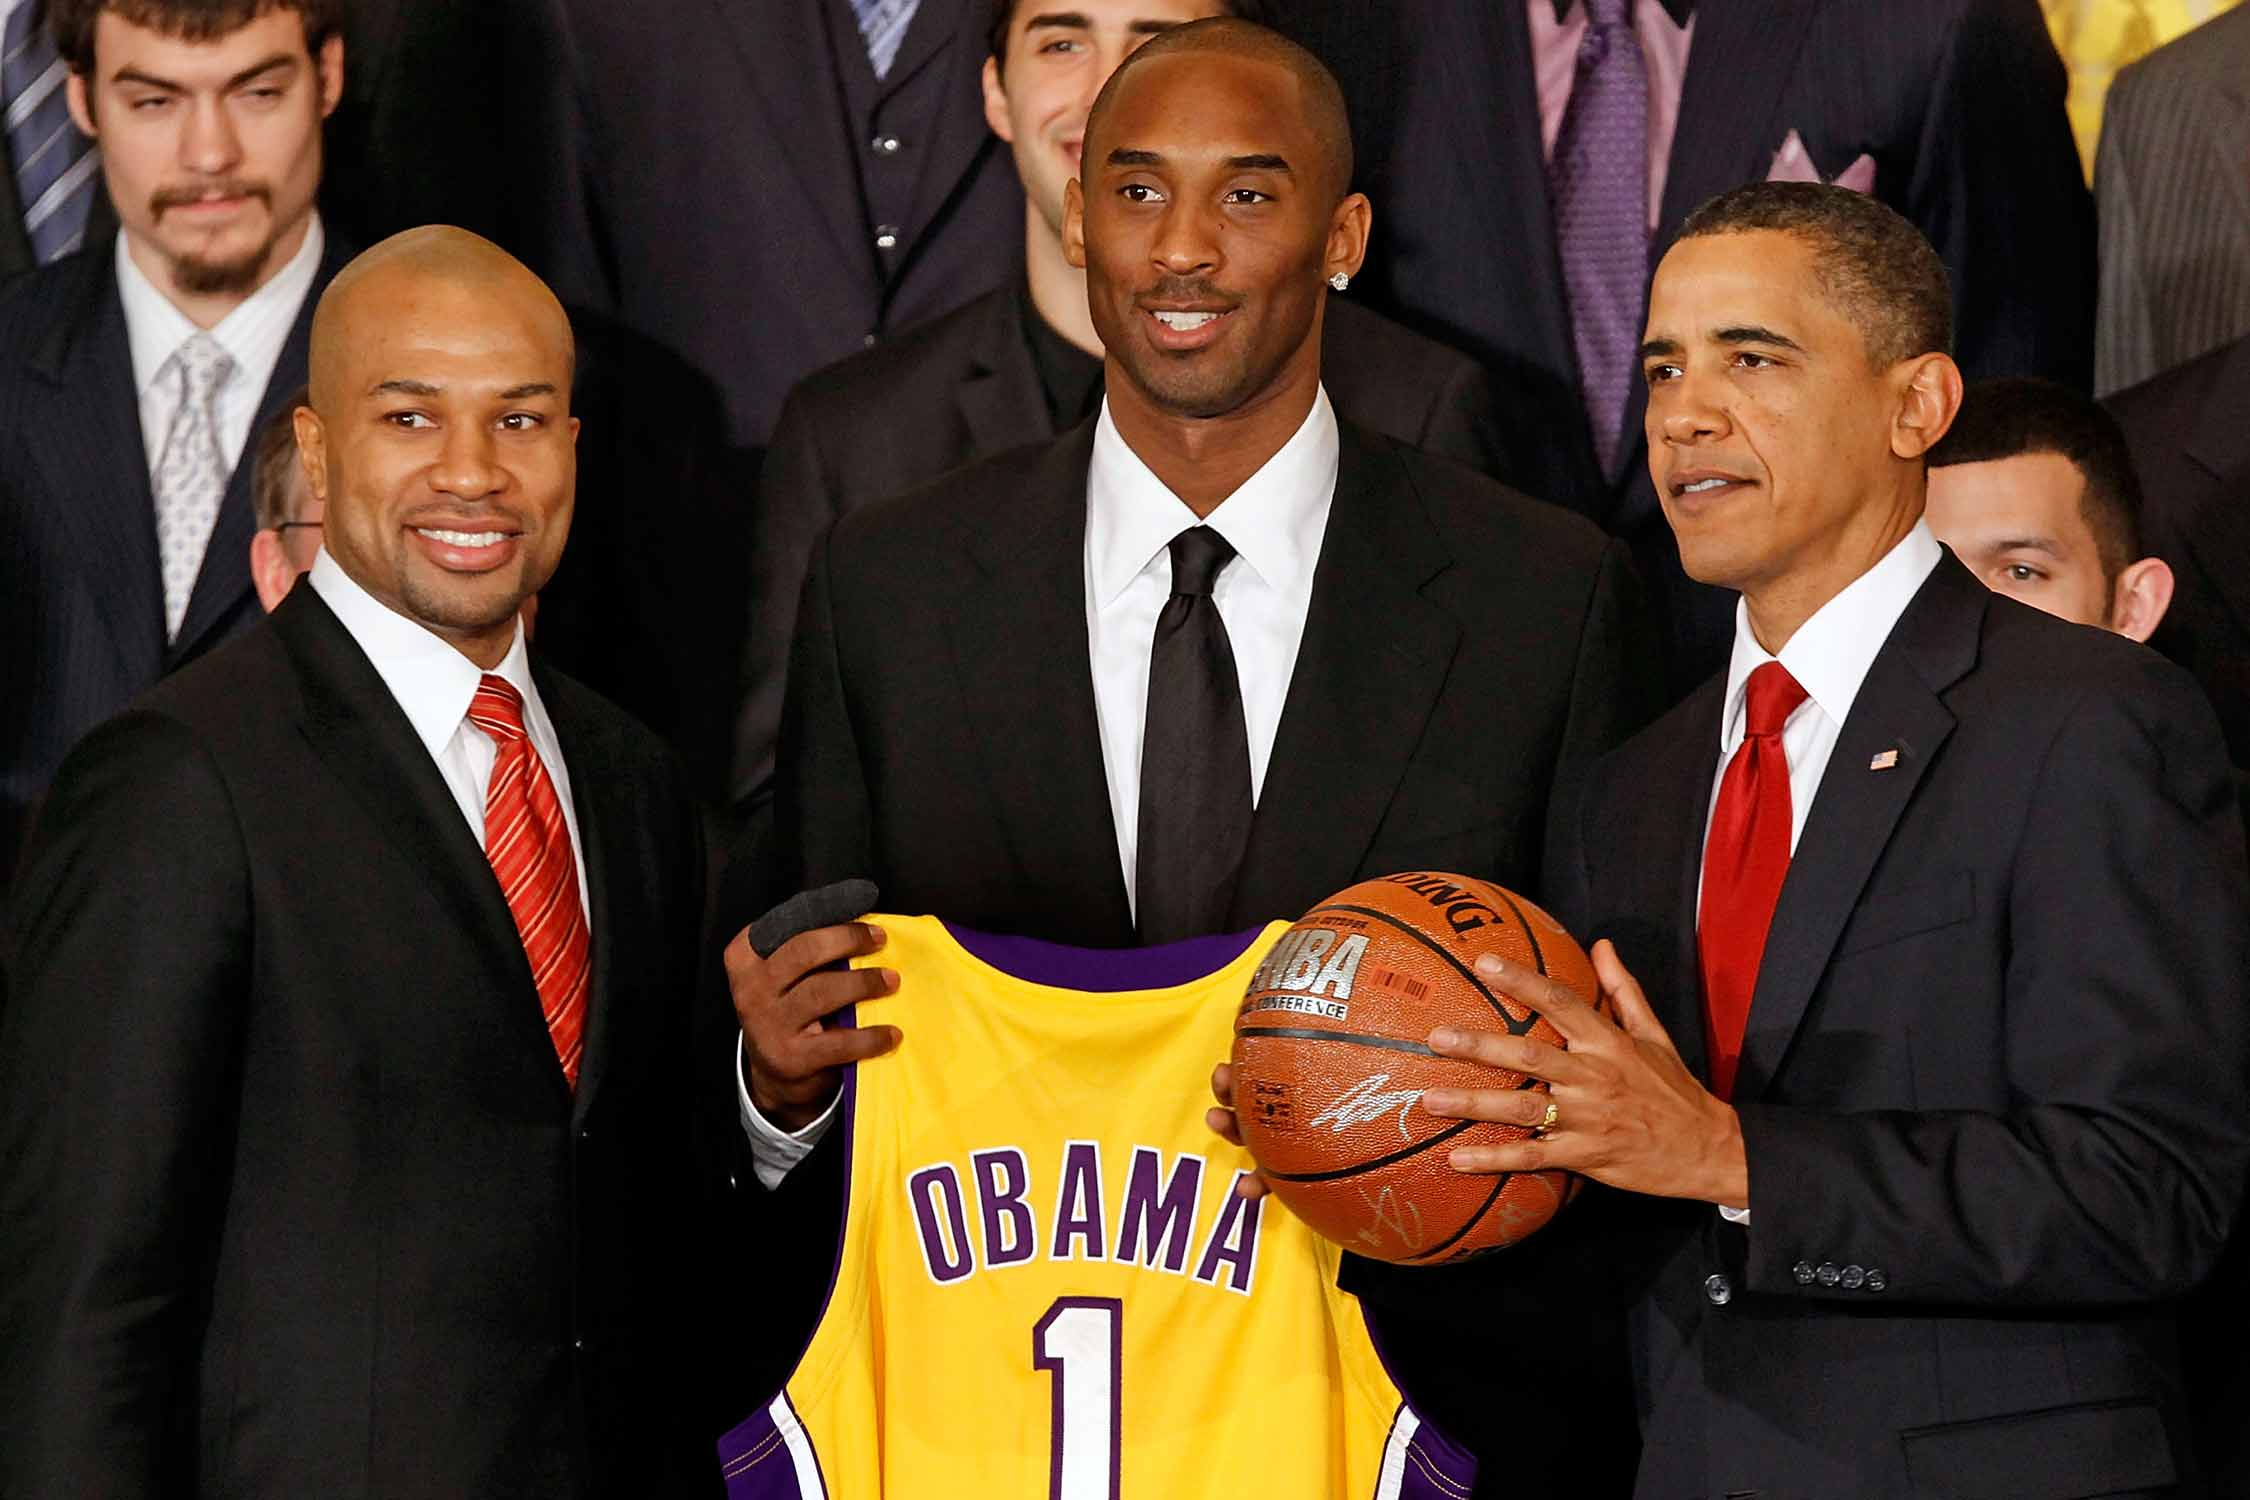 Derek Fisher, Kobe Bryant and Barack Obama